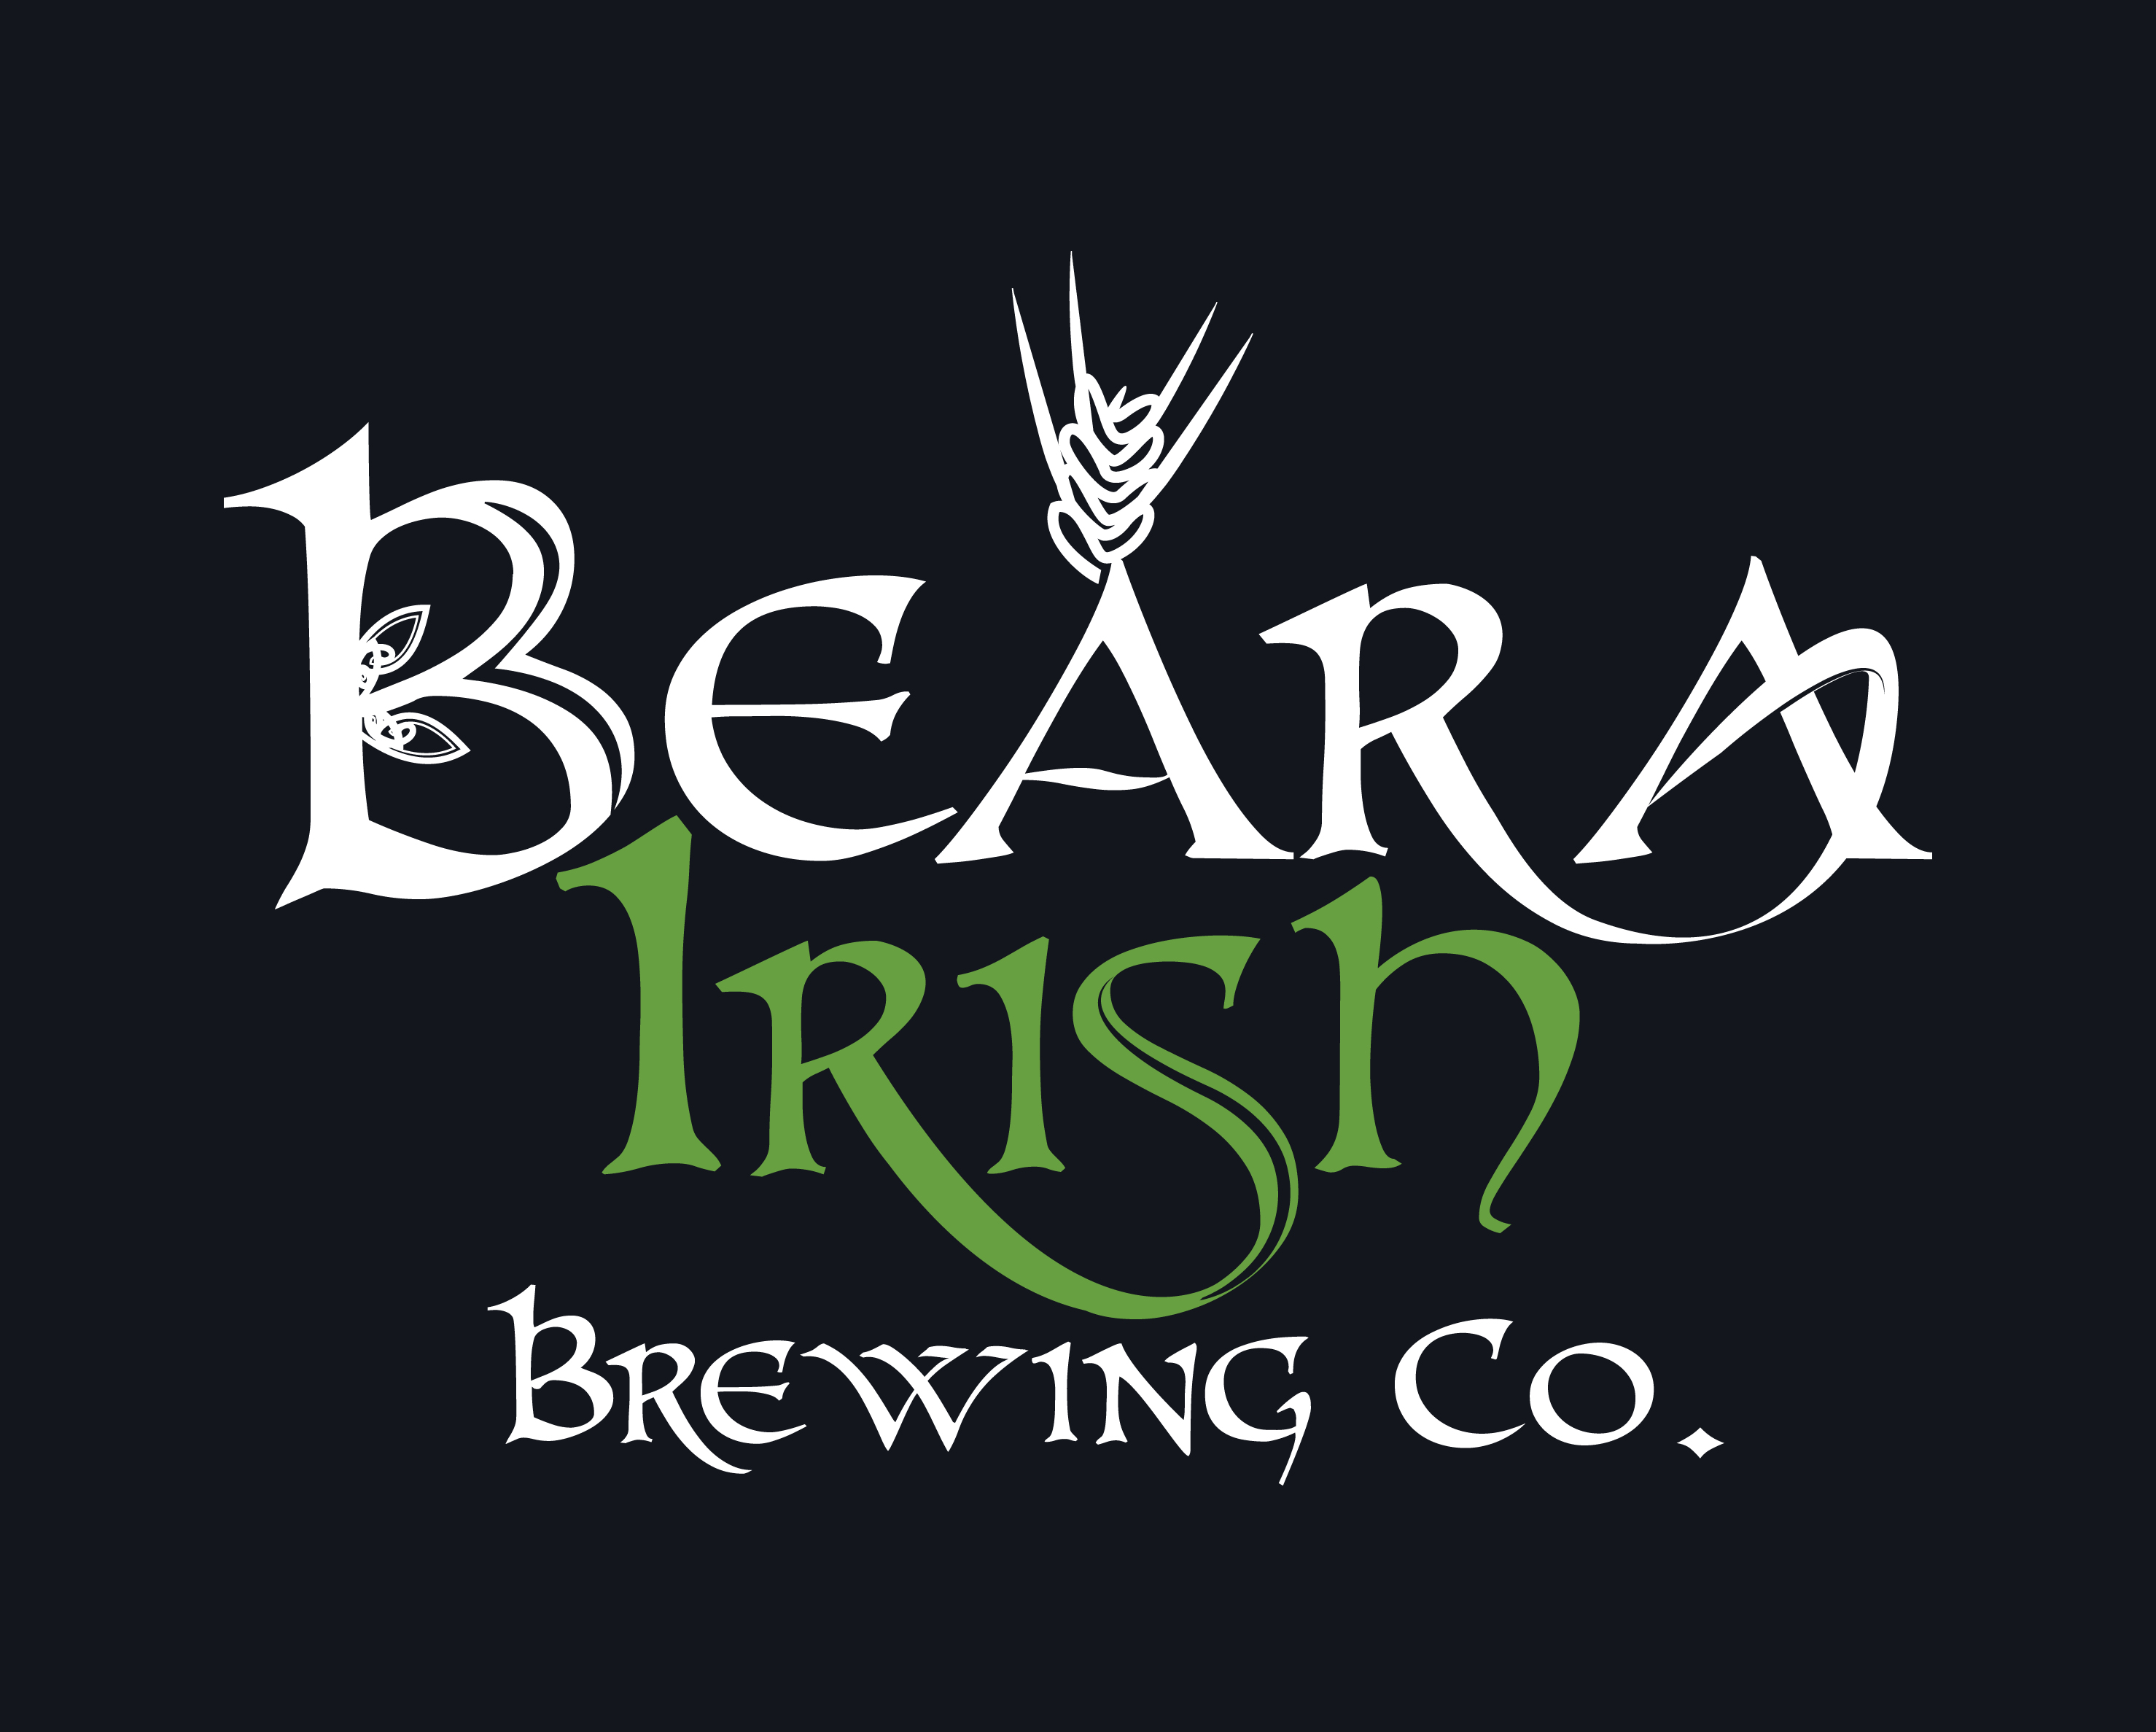 Beara Irish Brewing Co.